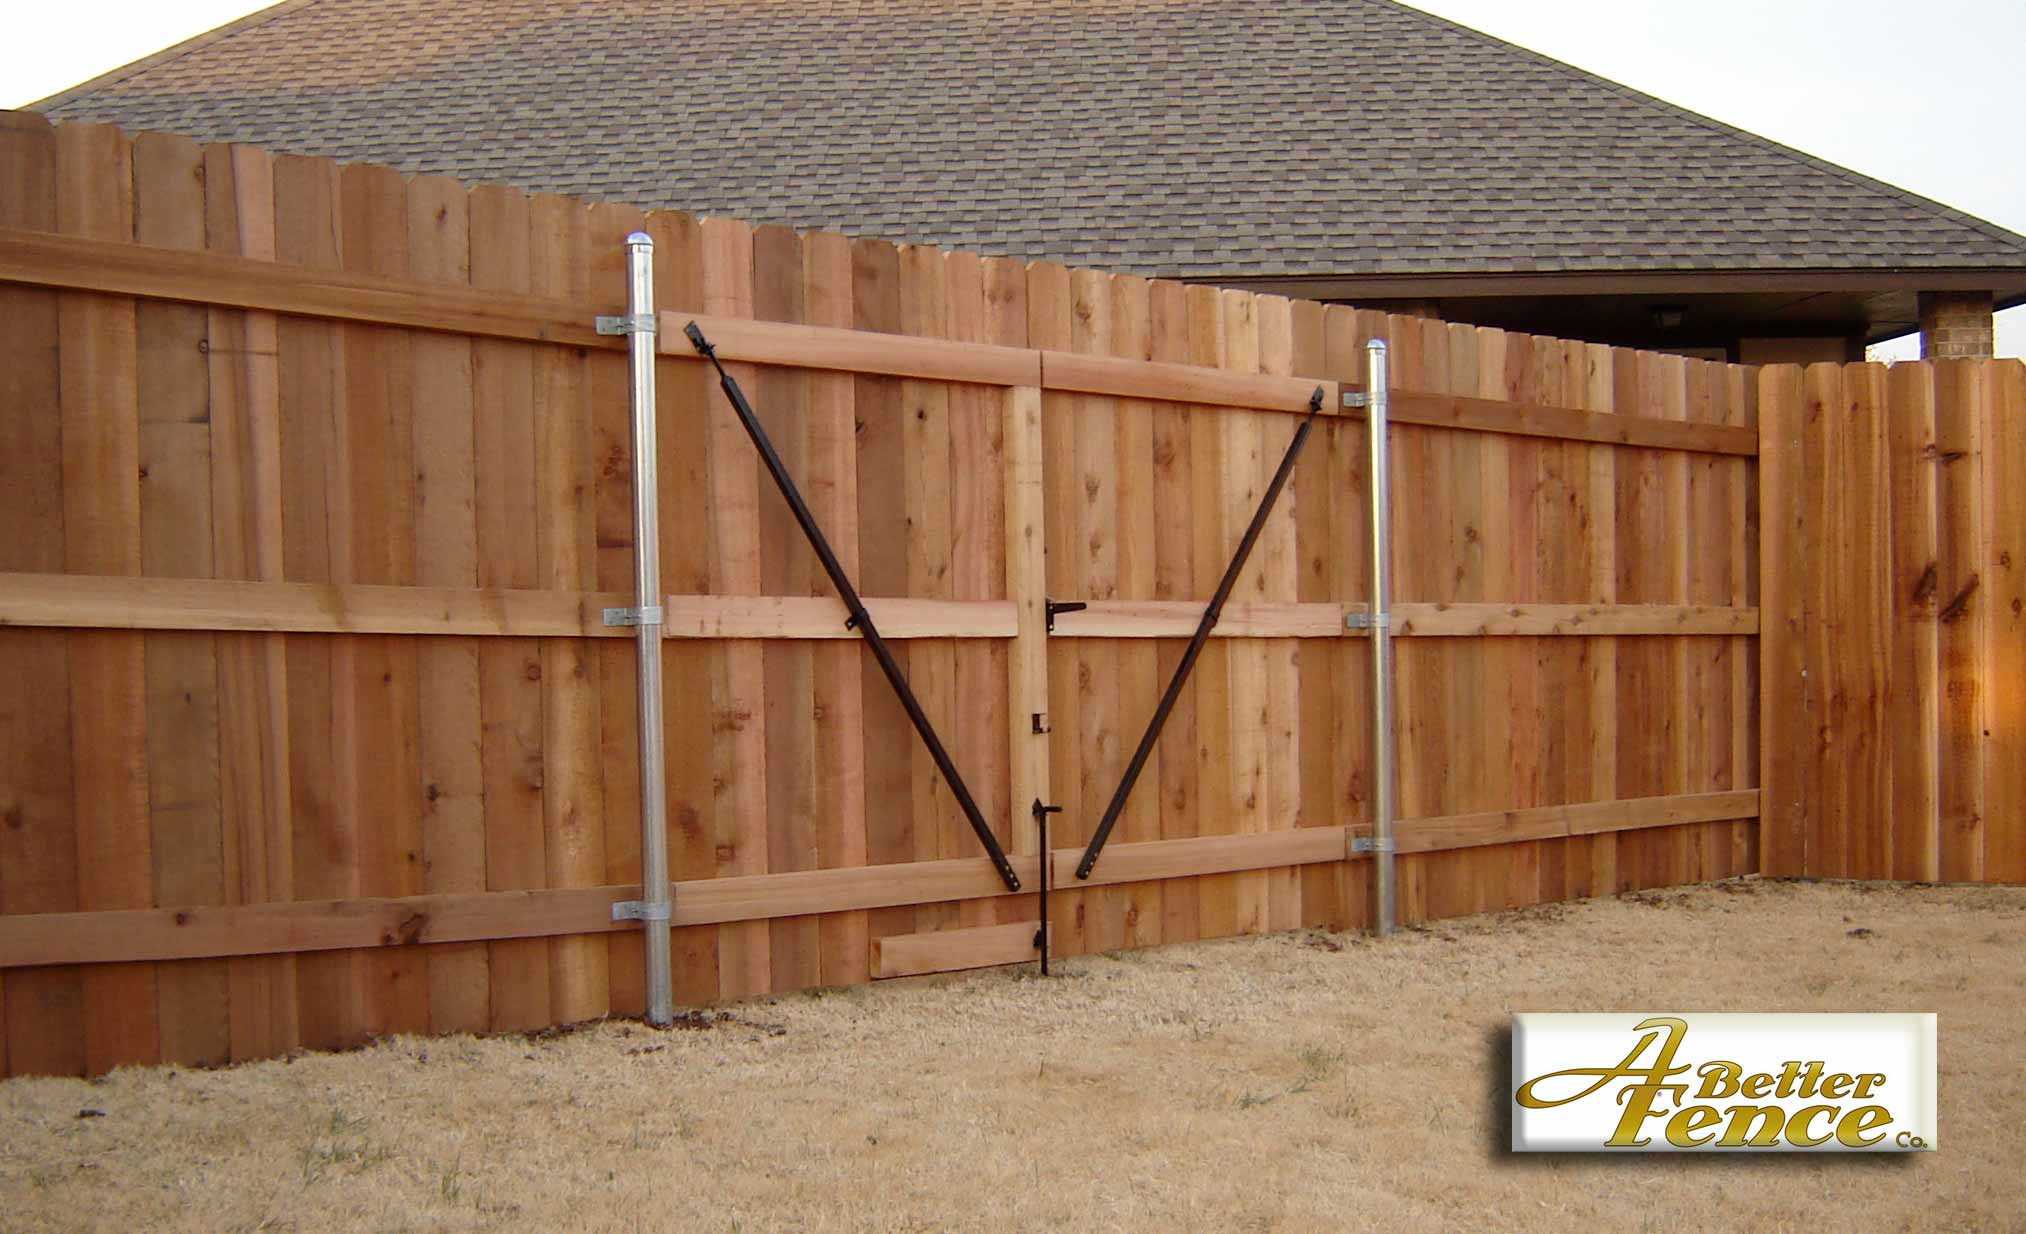 How To Build A Double Privacy Fence Gate